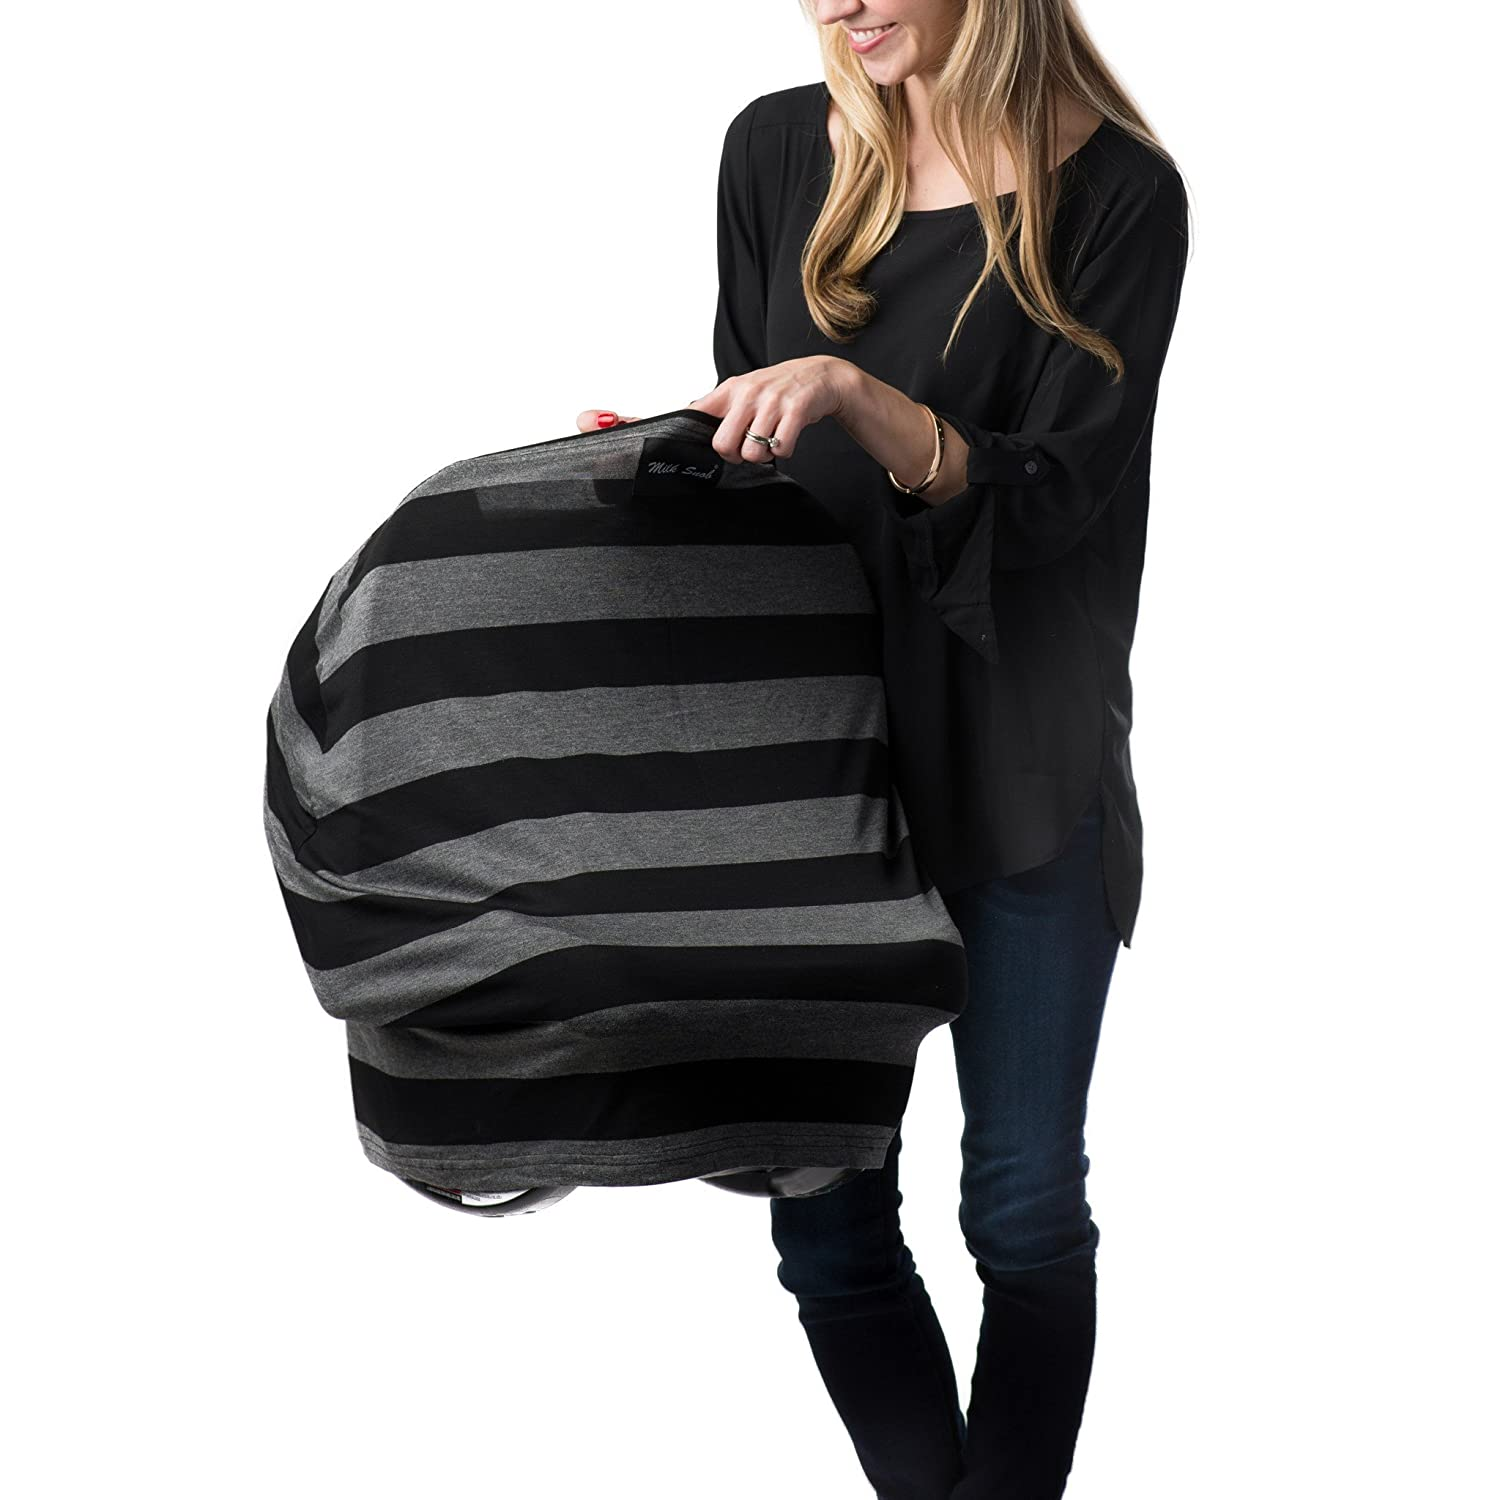 AS SEEN ON SHARK TANK The Original Milk Snob Infant Car Seat Cover and Nursing Cover Multi-Use 360° Coverage Breathable Stretchy - Bold Black and Grey Stripe